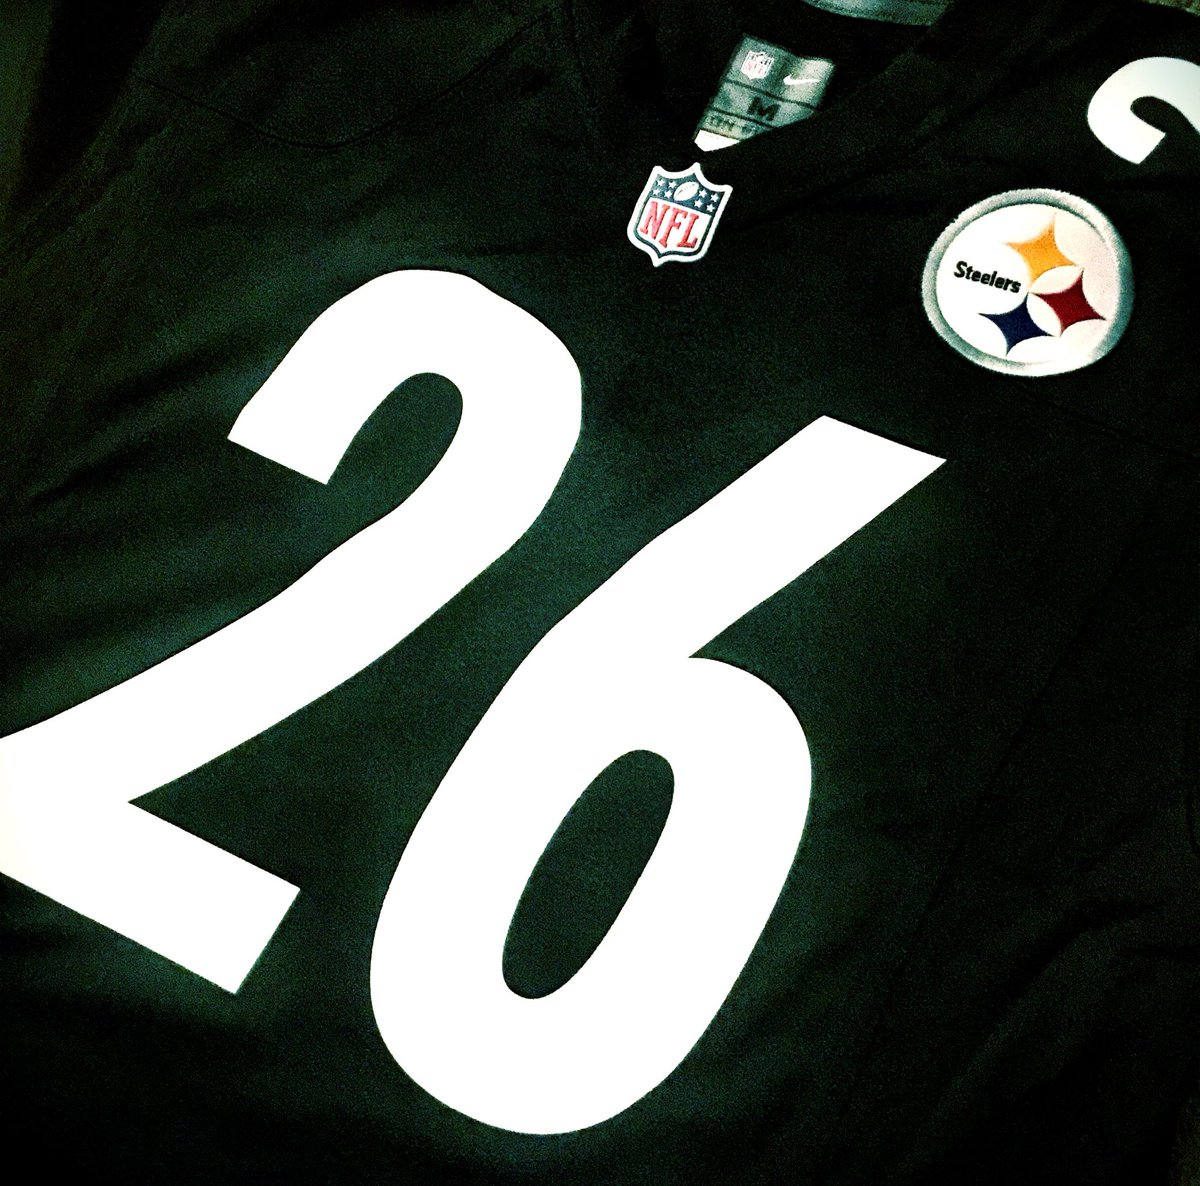 Want this @L_Bell26 jersey? RT this for a chance to win! #HereWeGo https://t.co/OPlQ4BGI4J